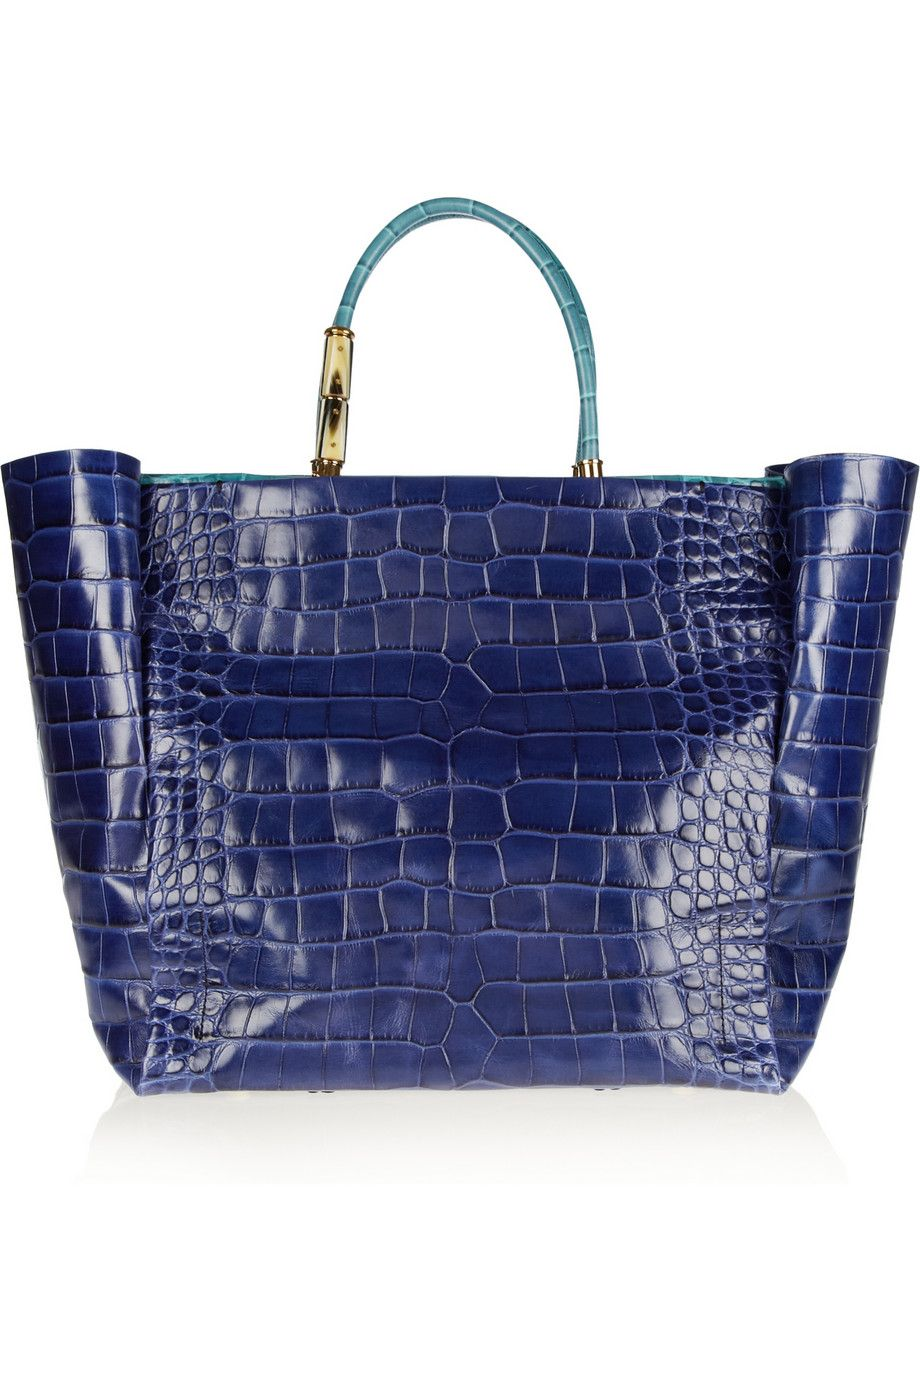 Lanvin - Moon River croc-effect leather shopper